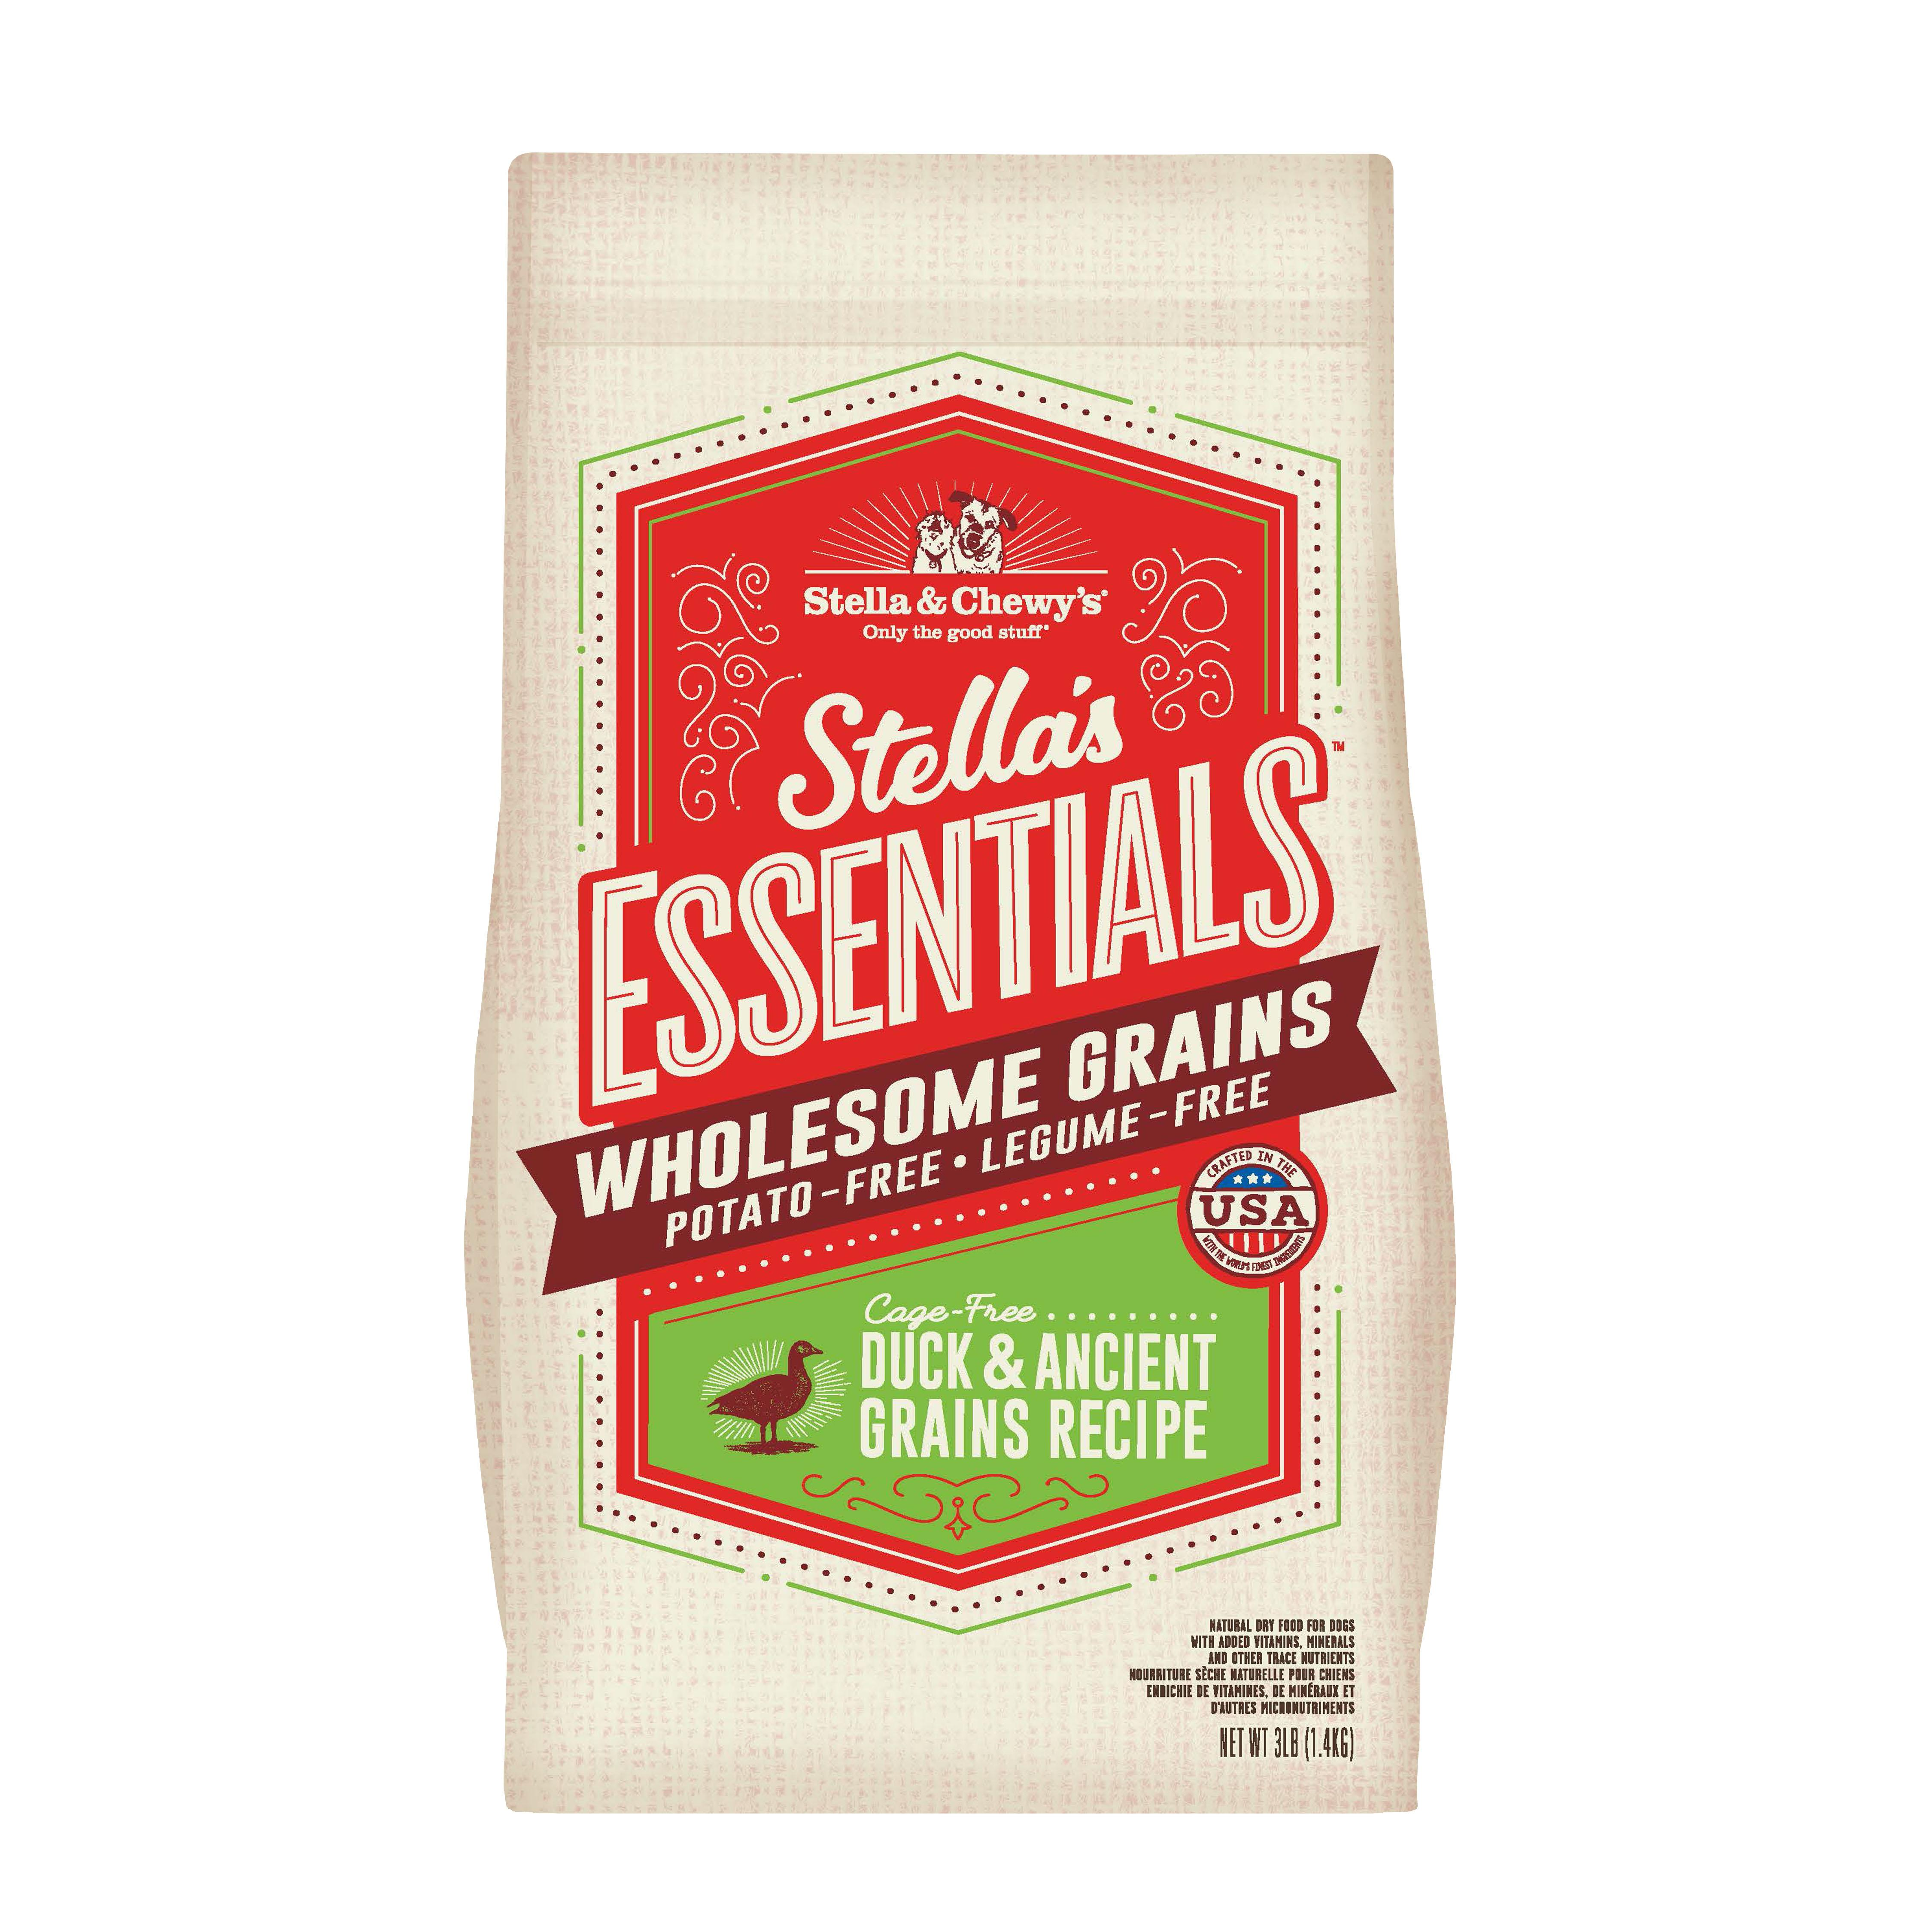 Stella & Chewy's Essentials Wholesome Grains Duck & Ancient Grains Dry Dog Food Image